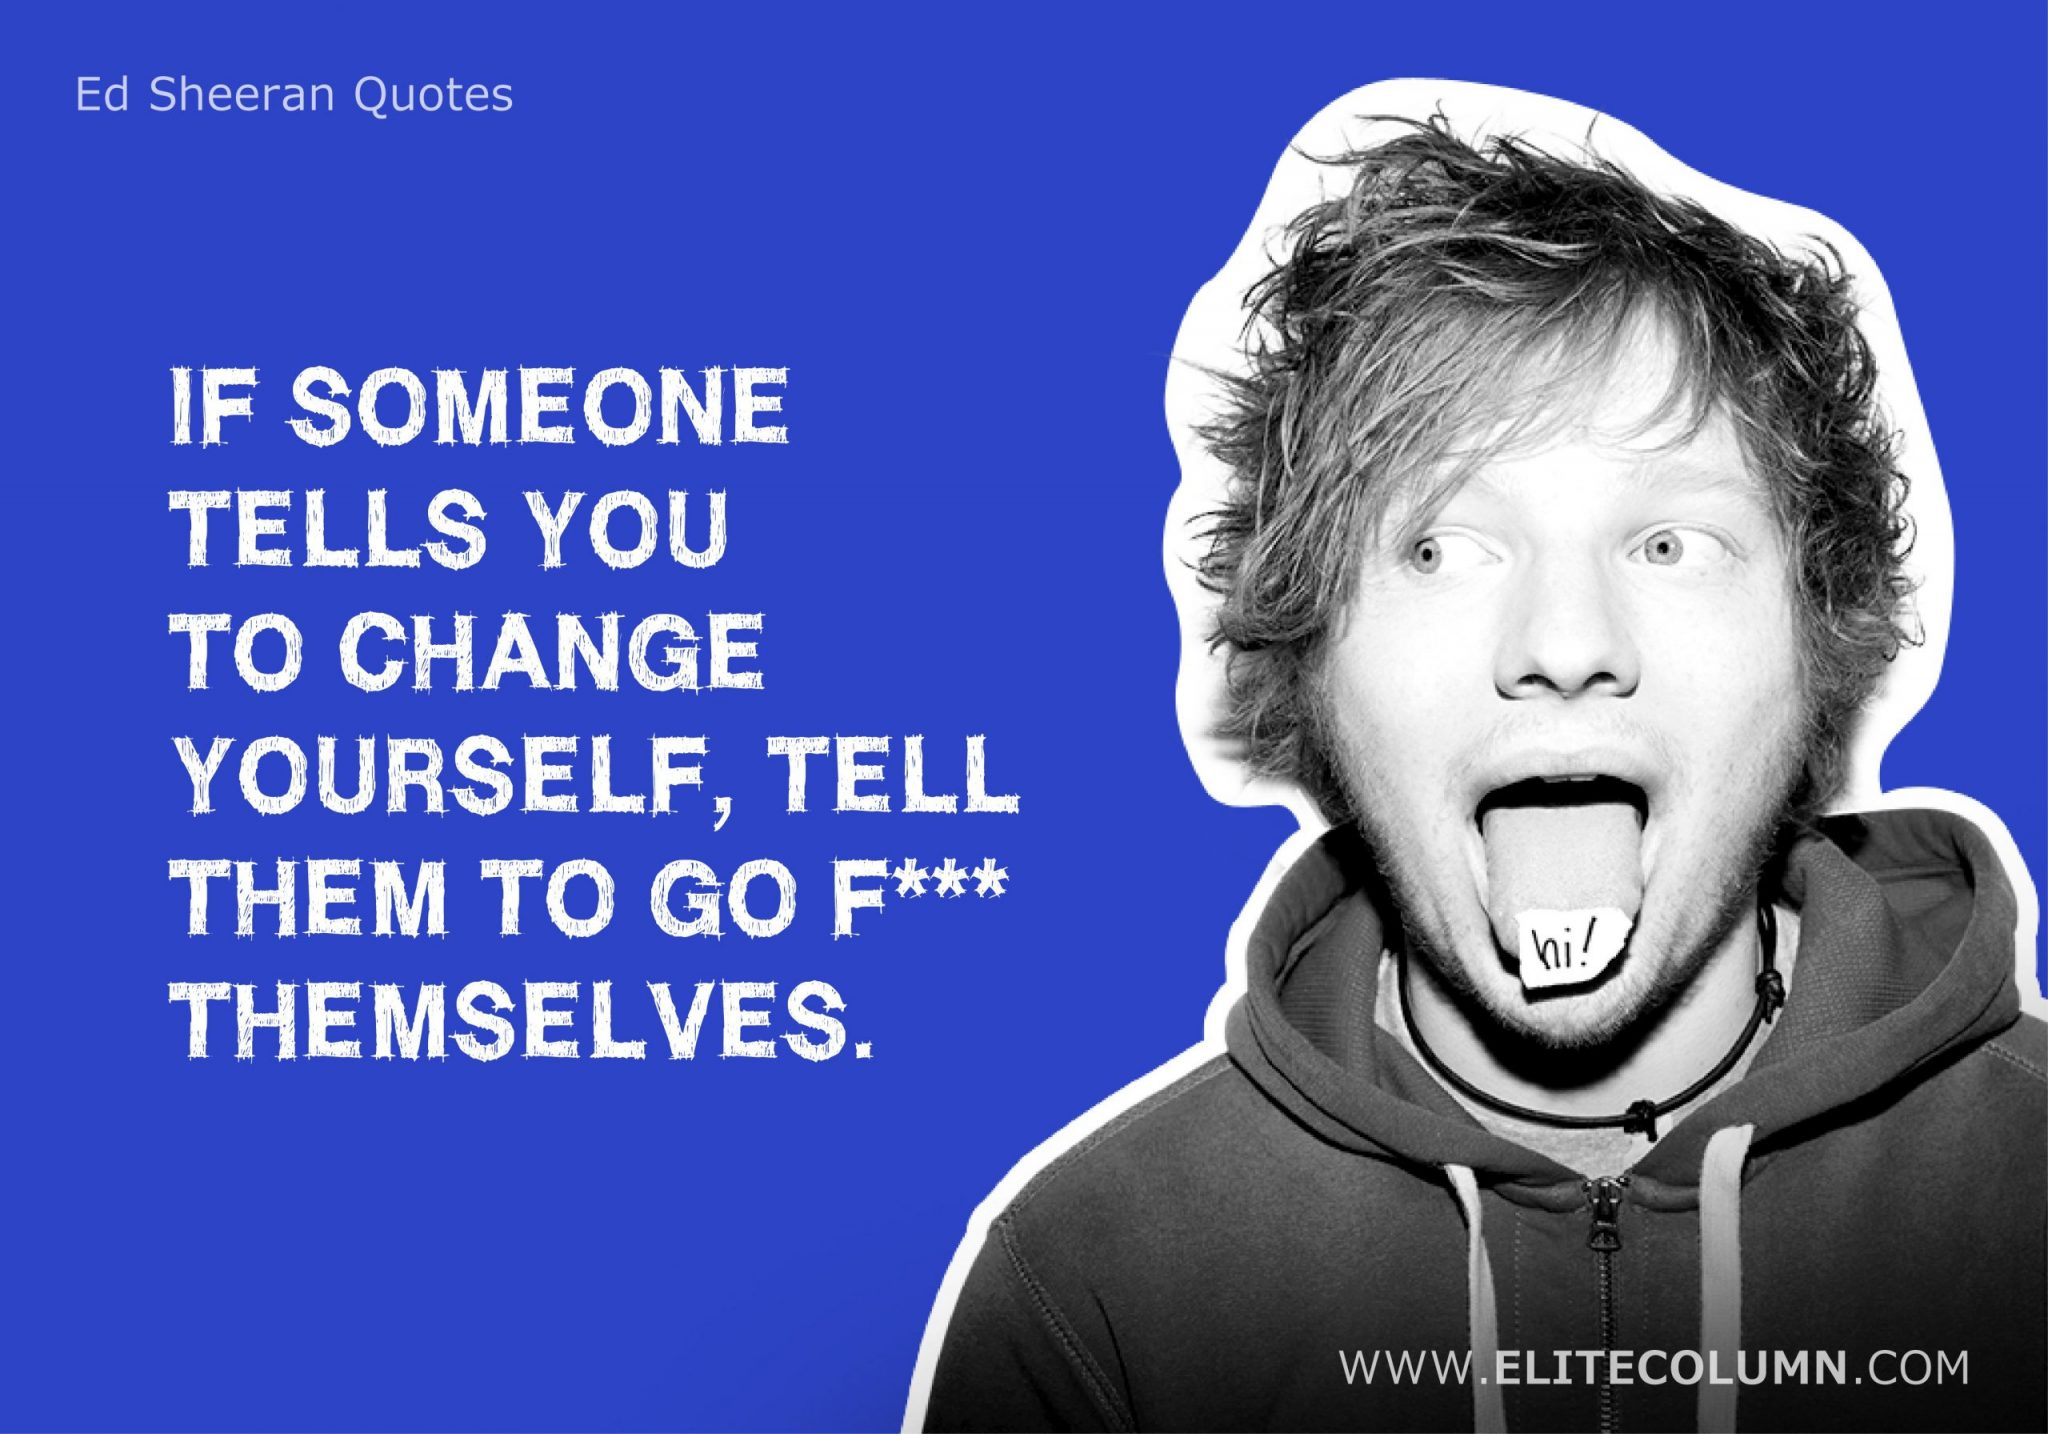 Ed Sheeran Quotes (12)